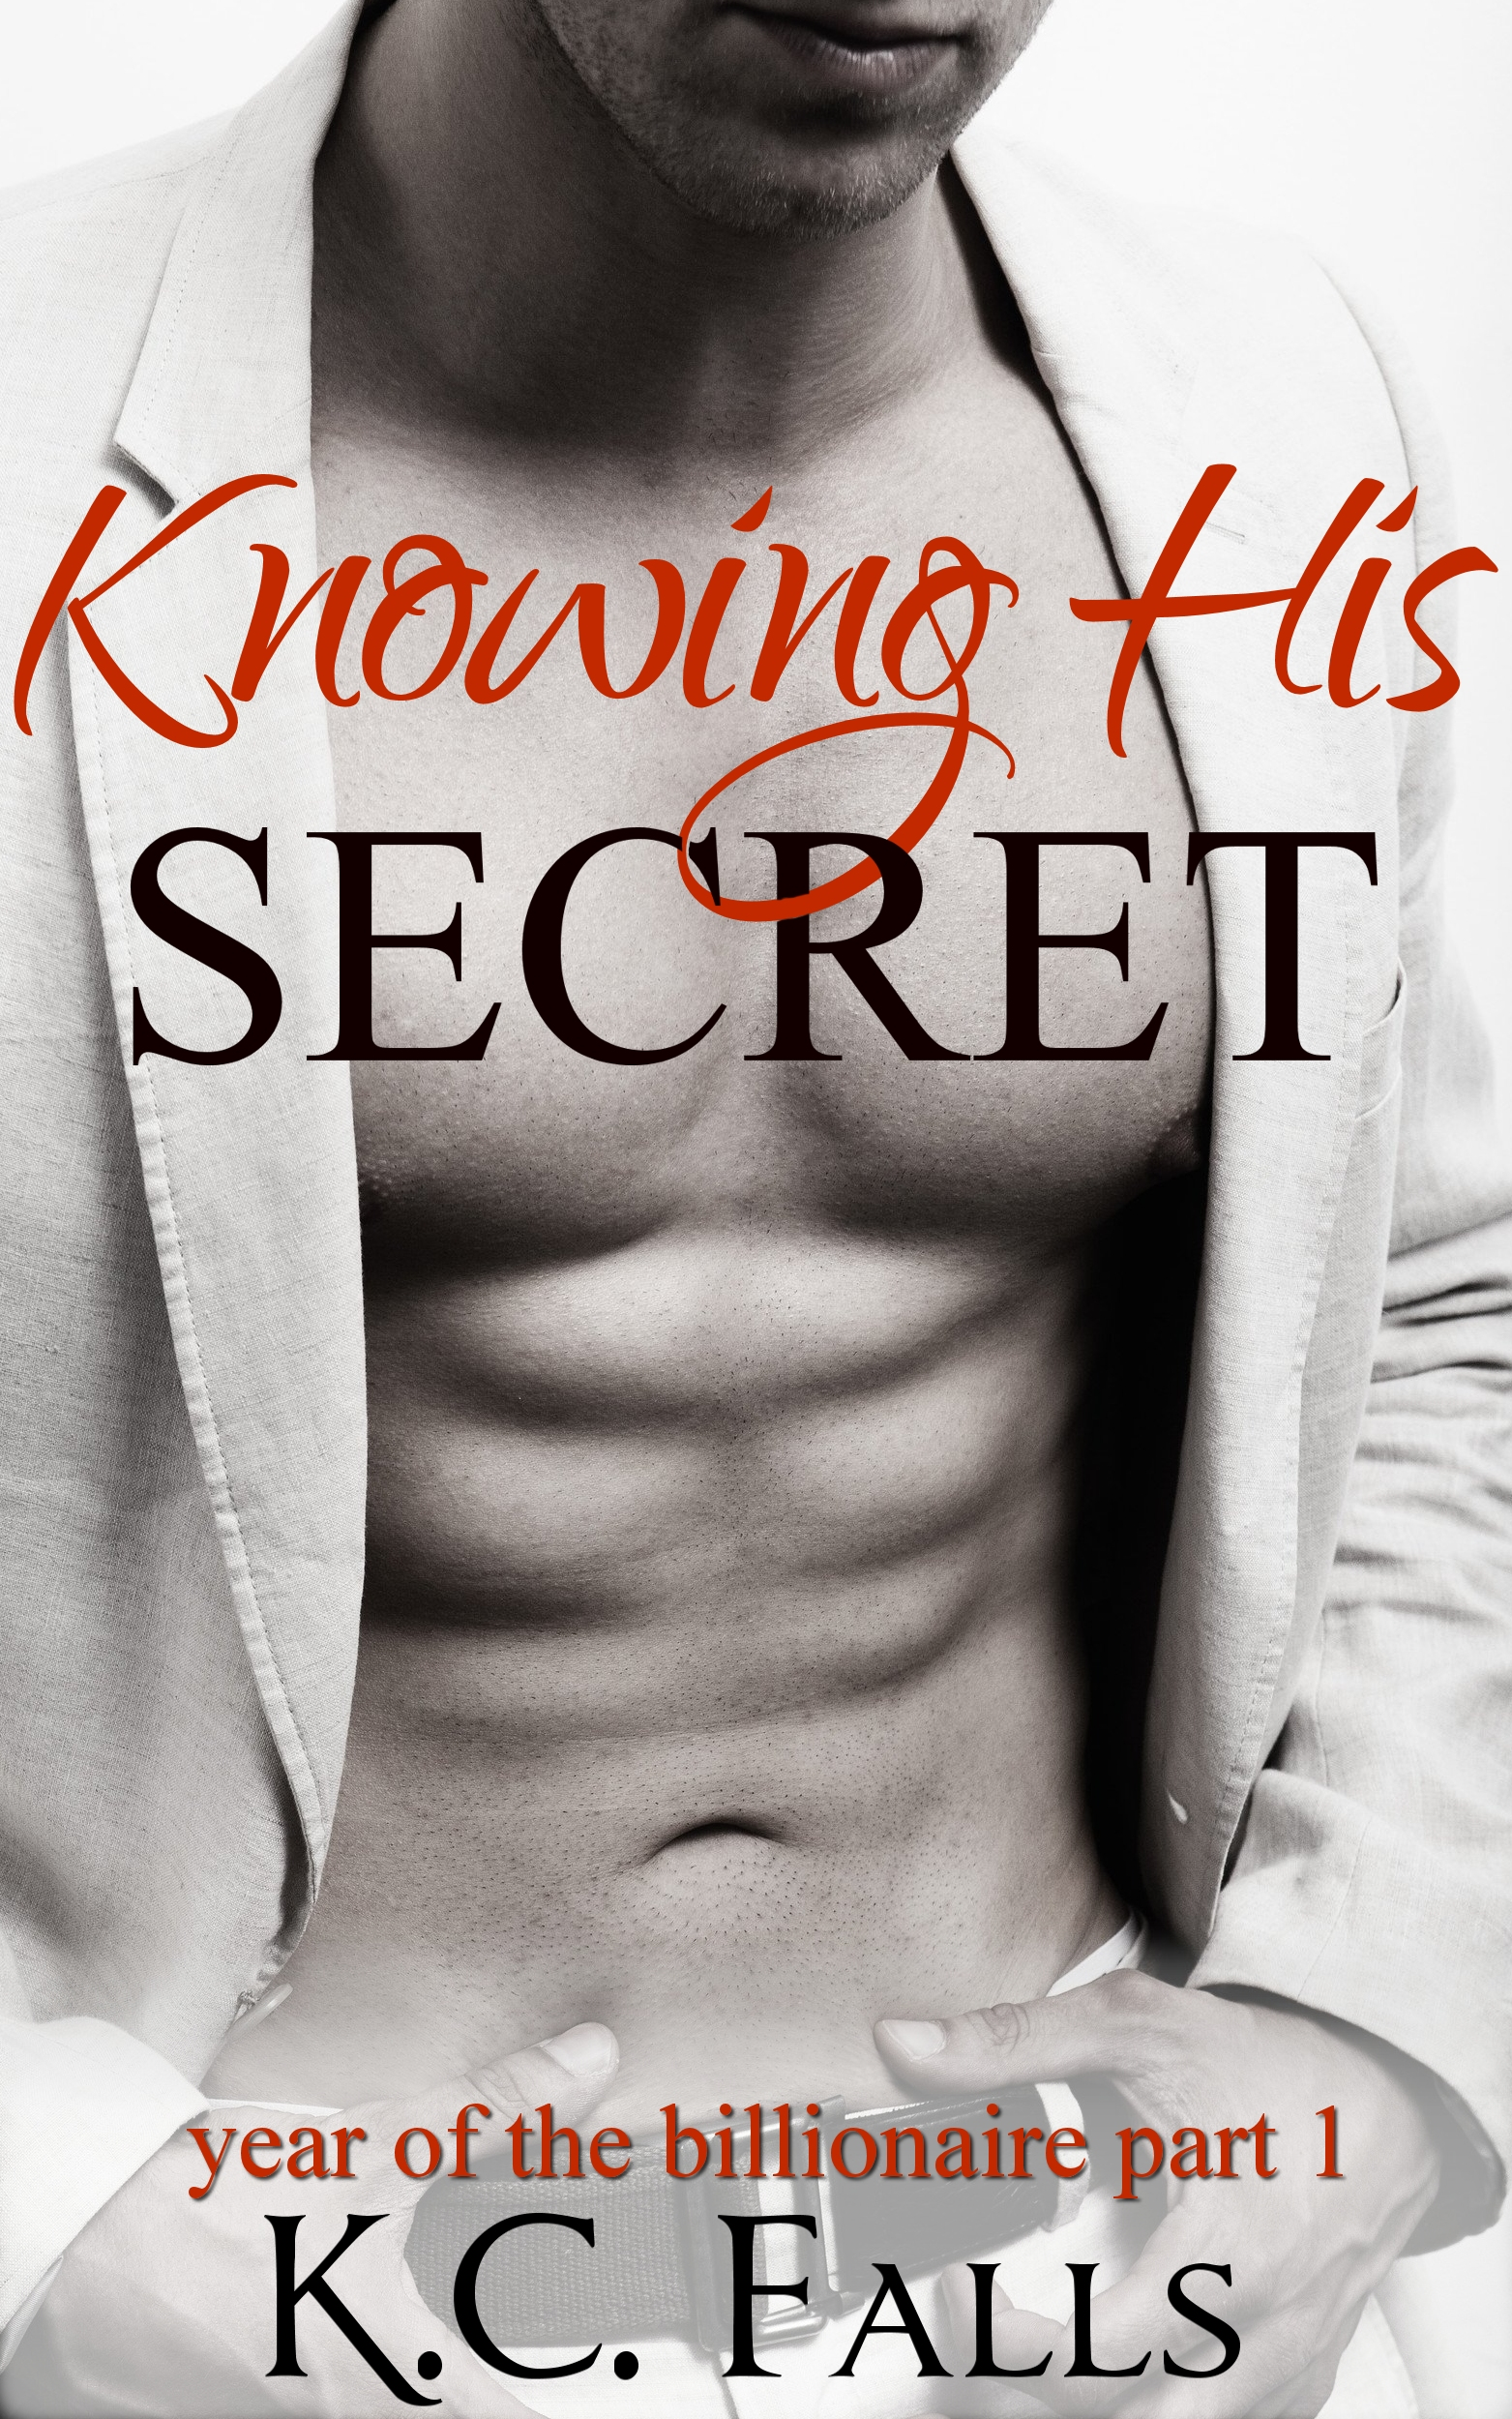 Knowing his secret (year of the billionaire #1)